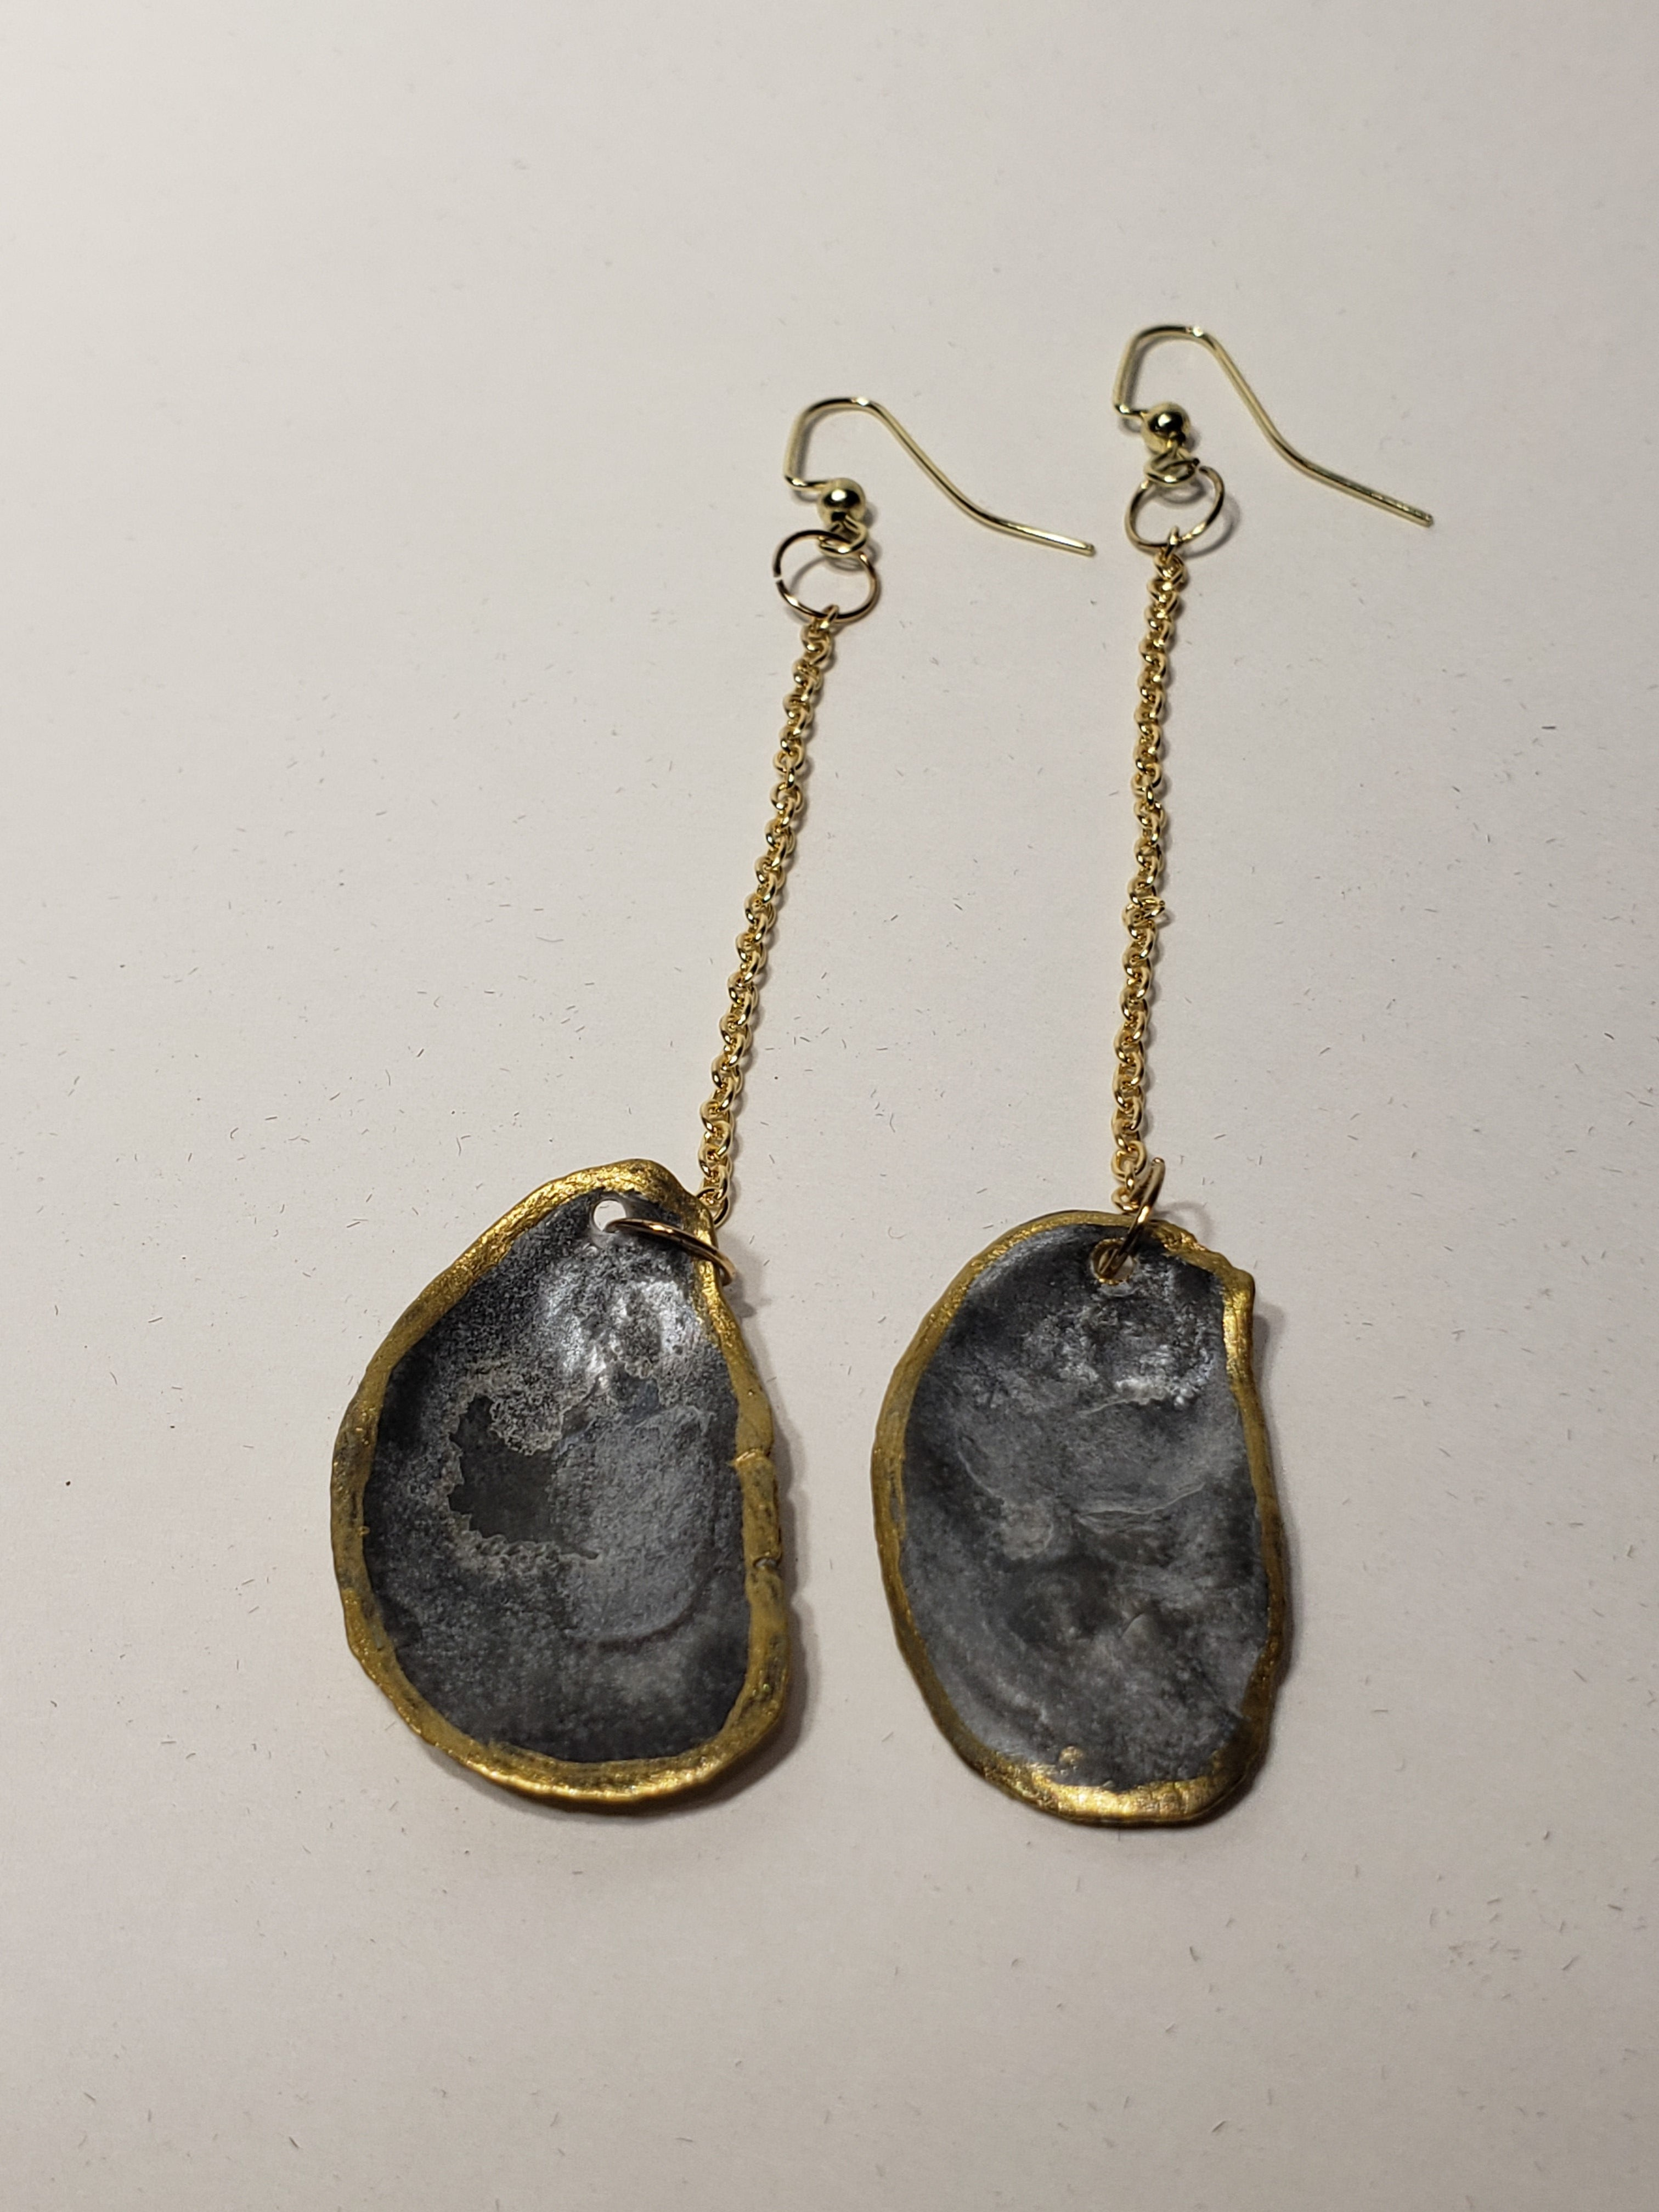 Charleston Oyster Shell Earrings - The Look By Lucy